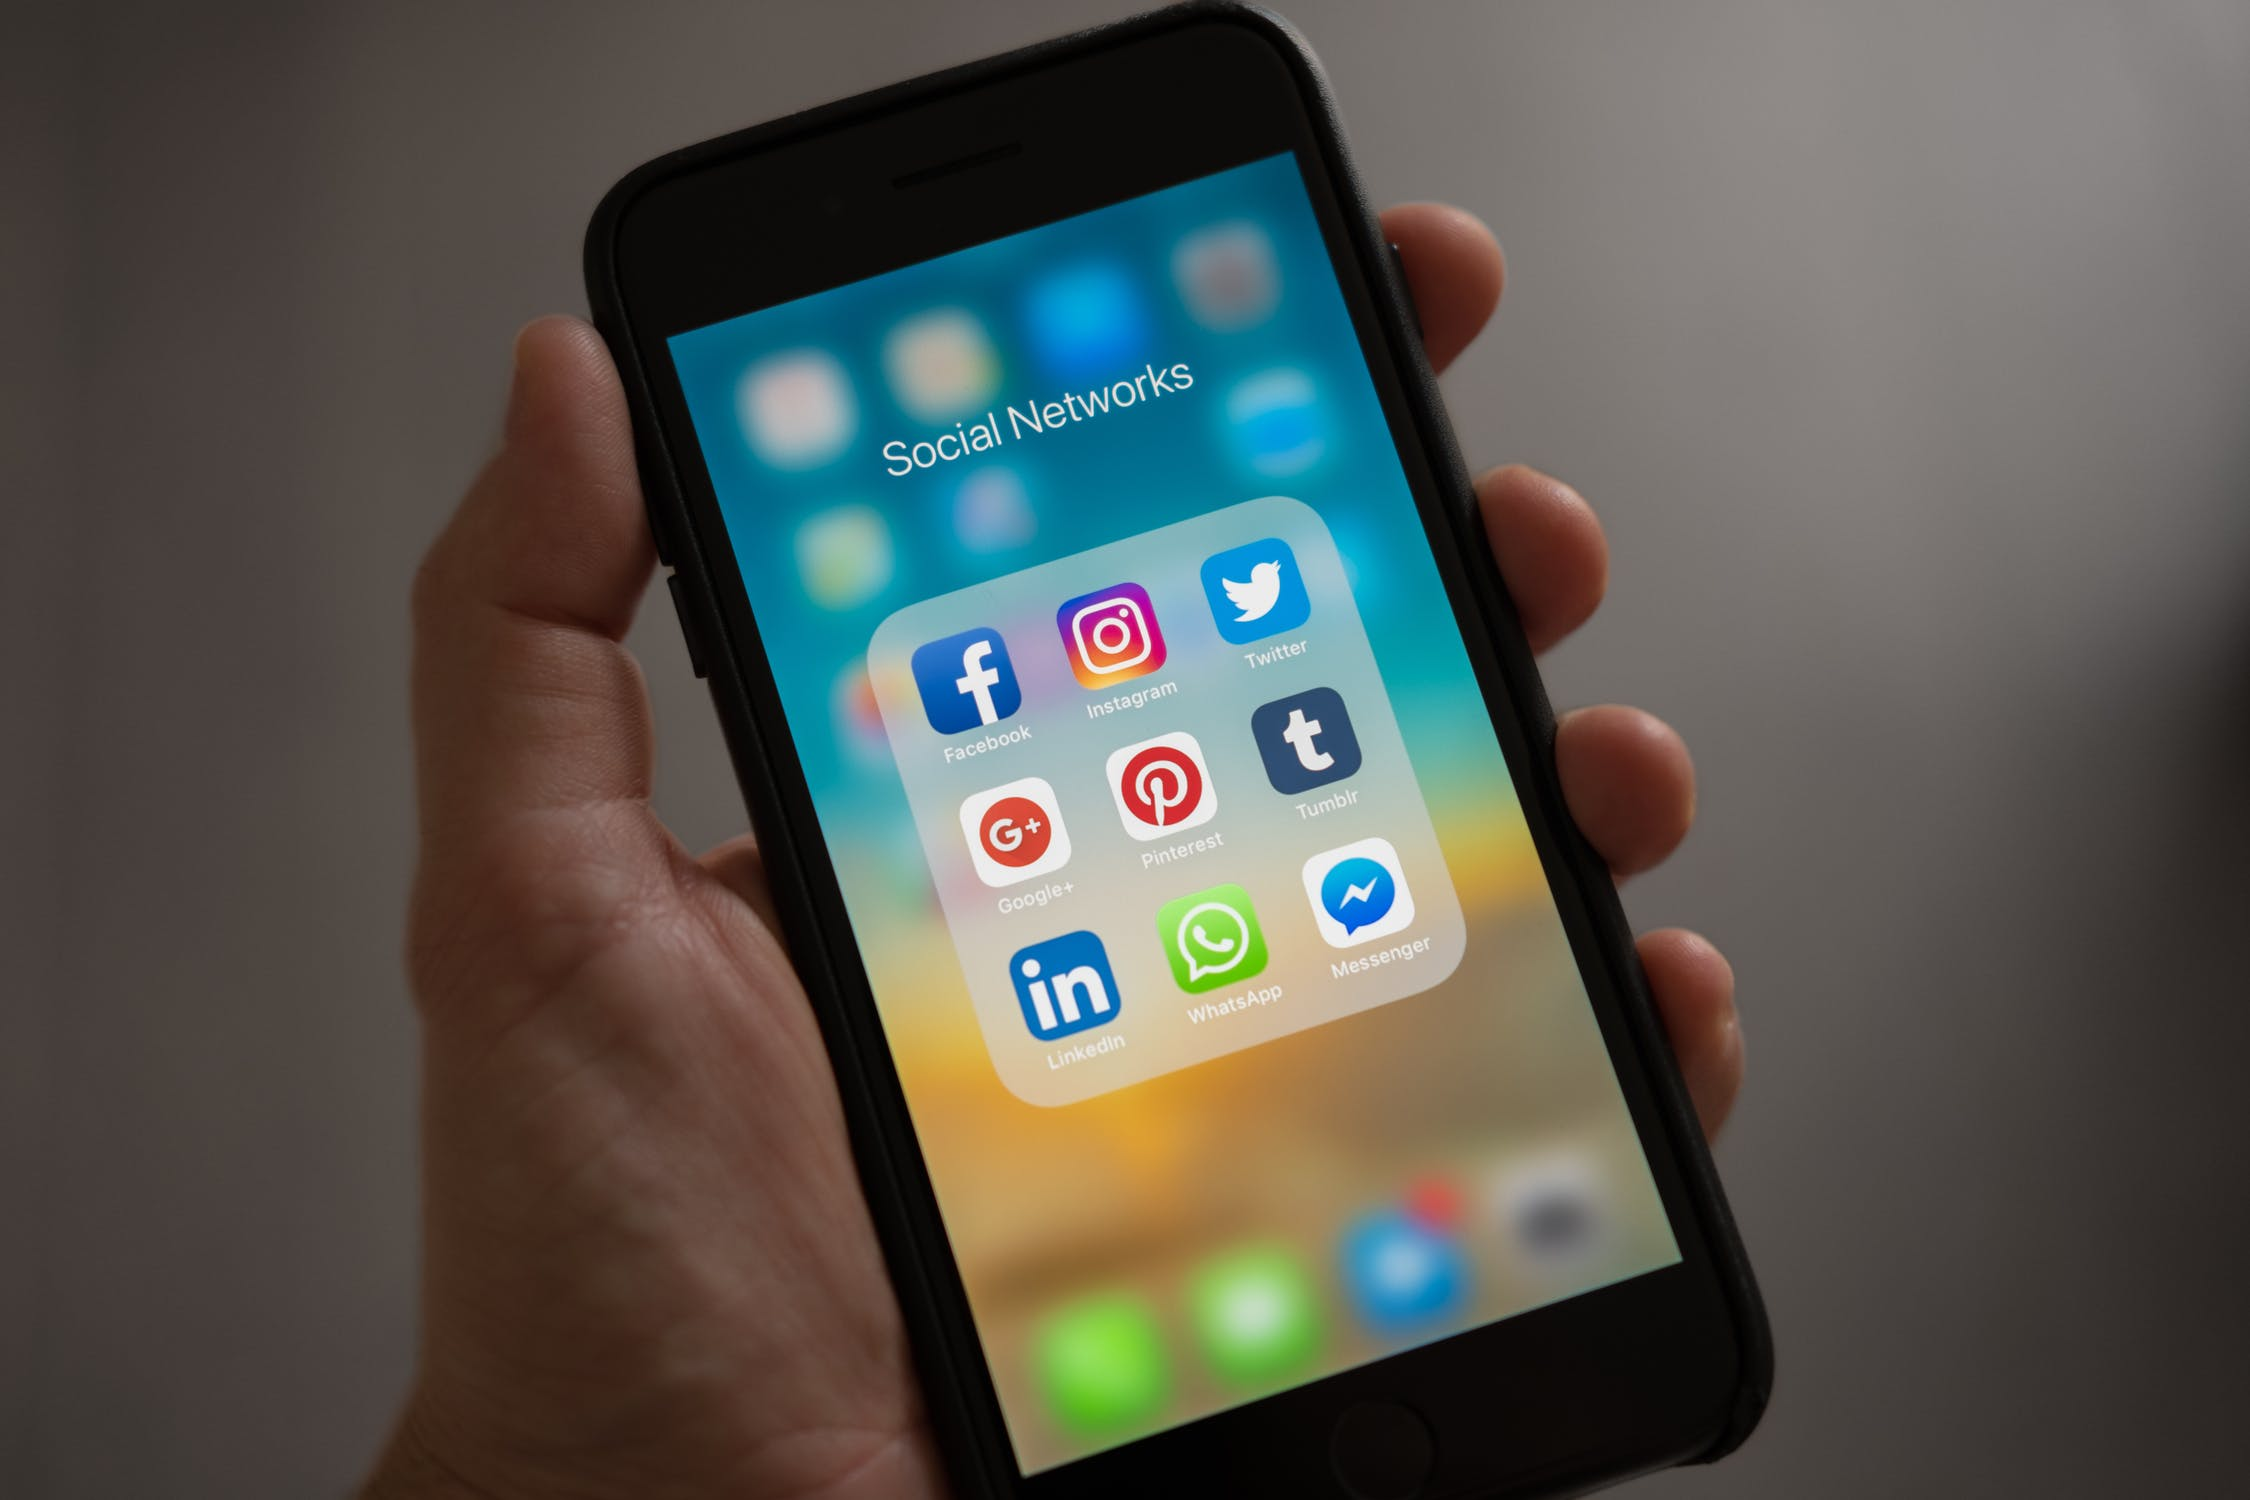 How to Protect Personal Data on Social Networks